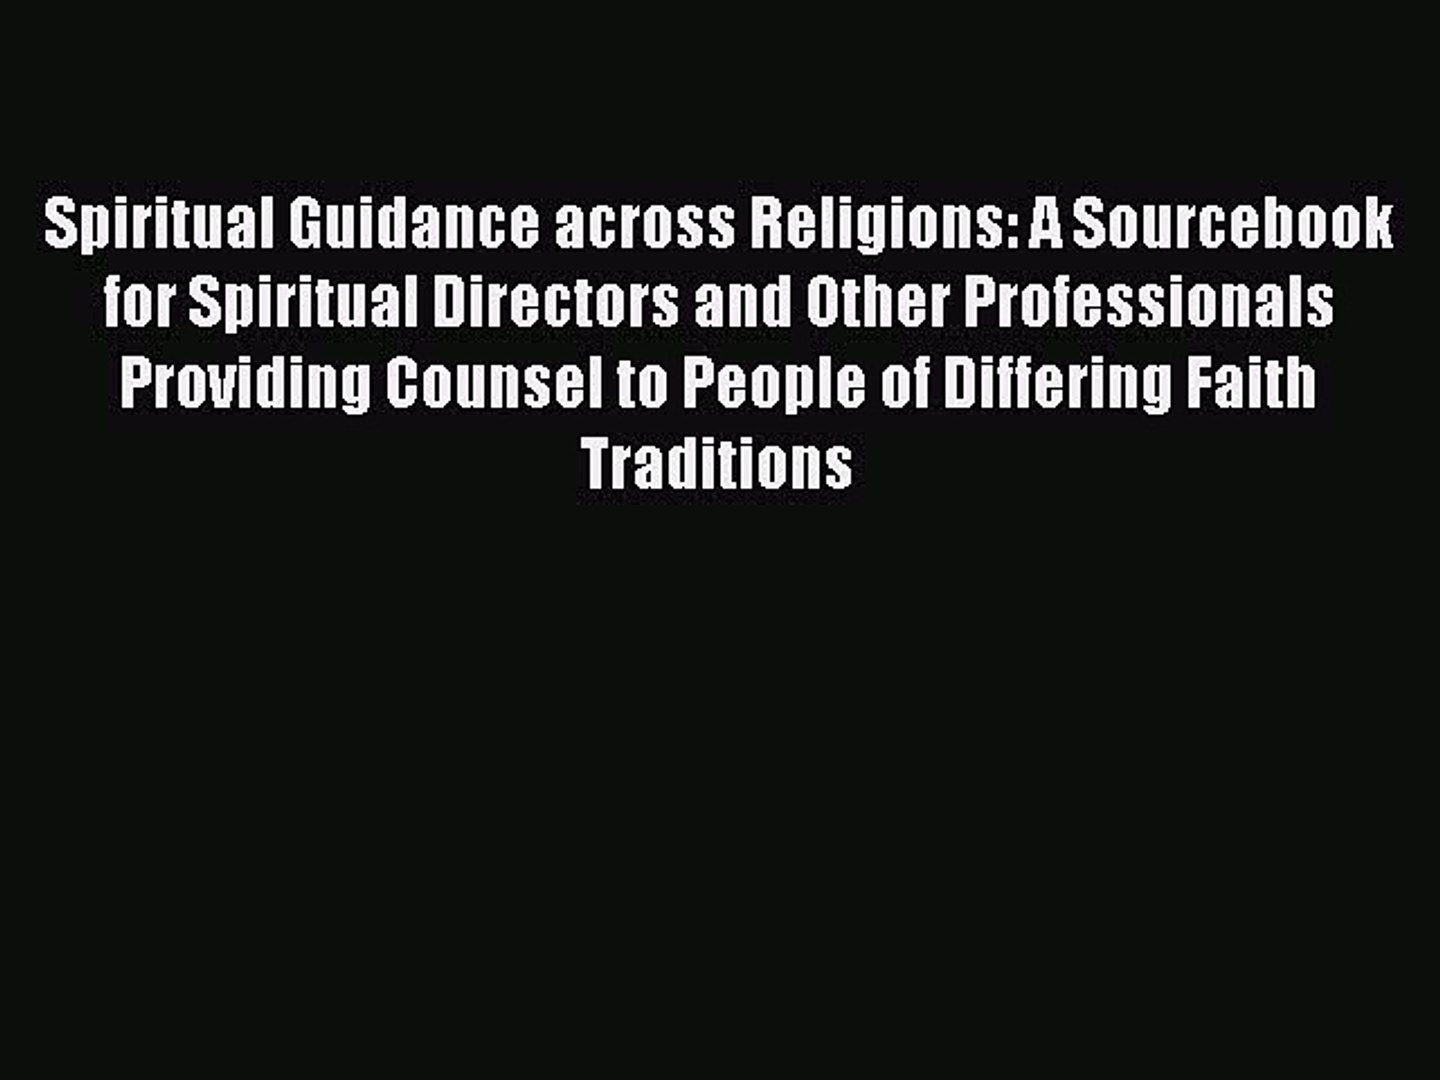 Download Spiritual Guidance across Religions: A Sourcebook for Spiritual Directors and Other